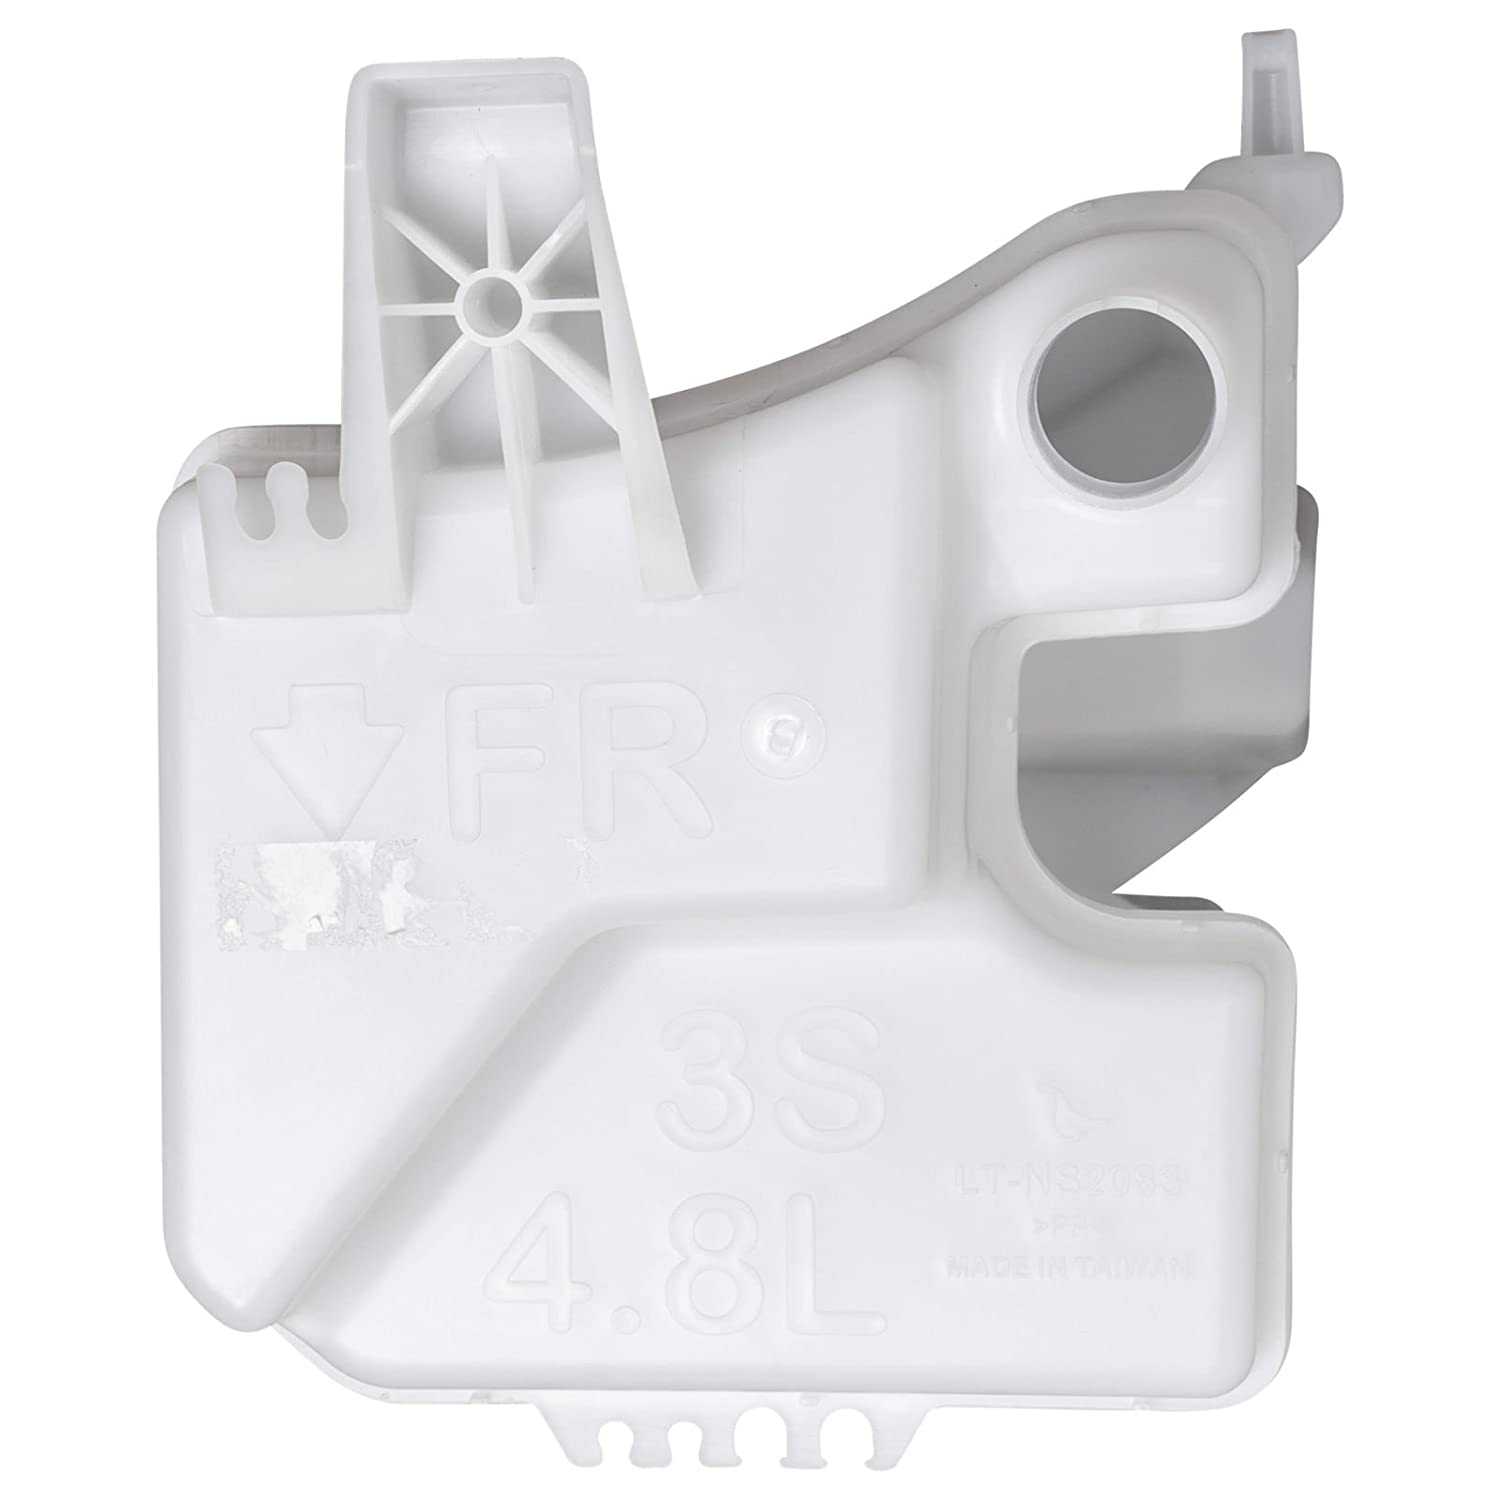 Windshield Washer Tank for 2013-2015 Nissan Sentra fits 289103SG0A NI1288141